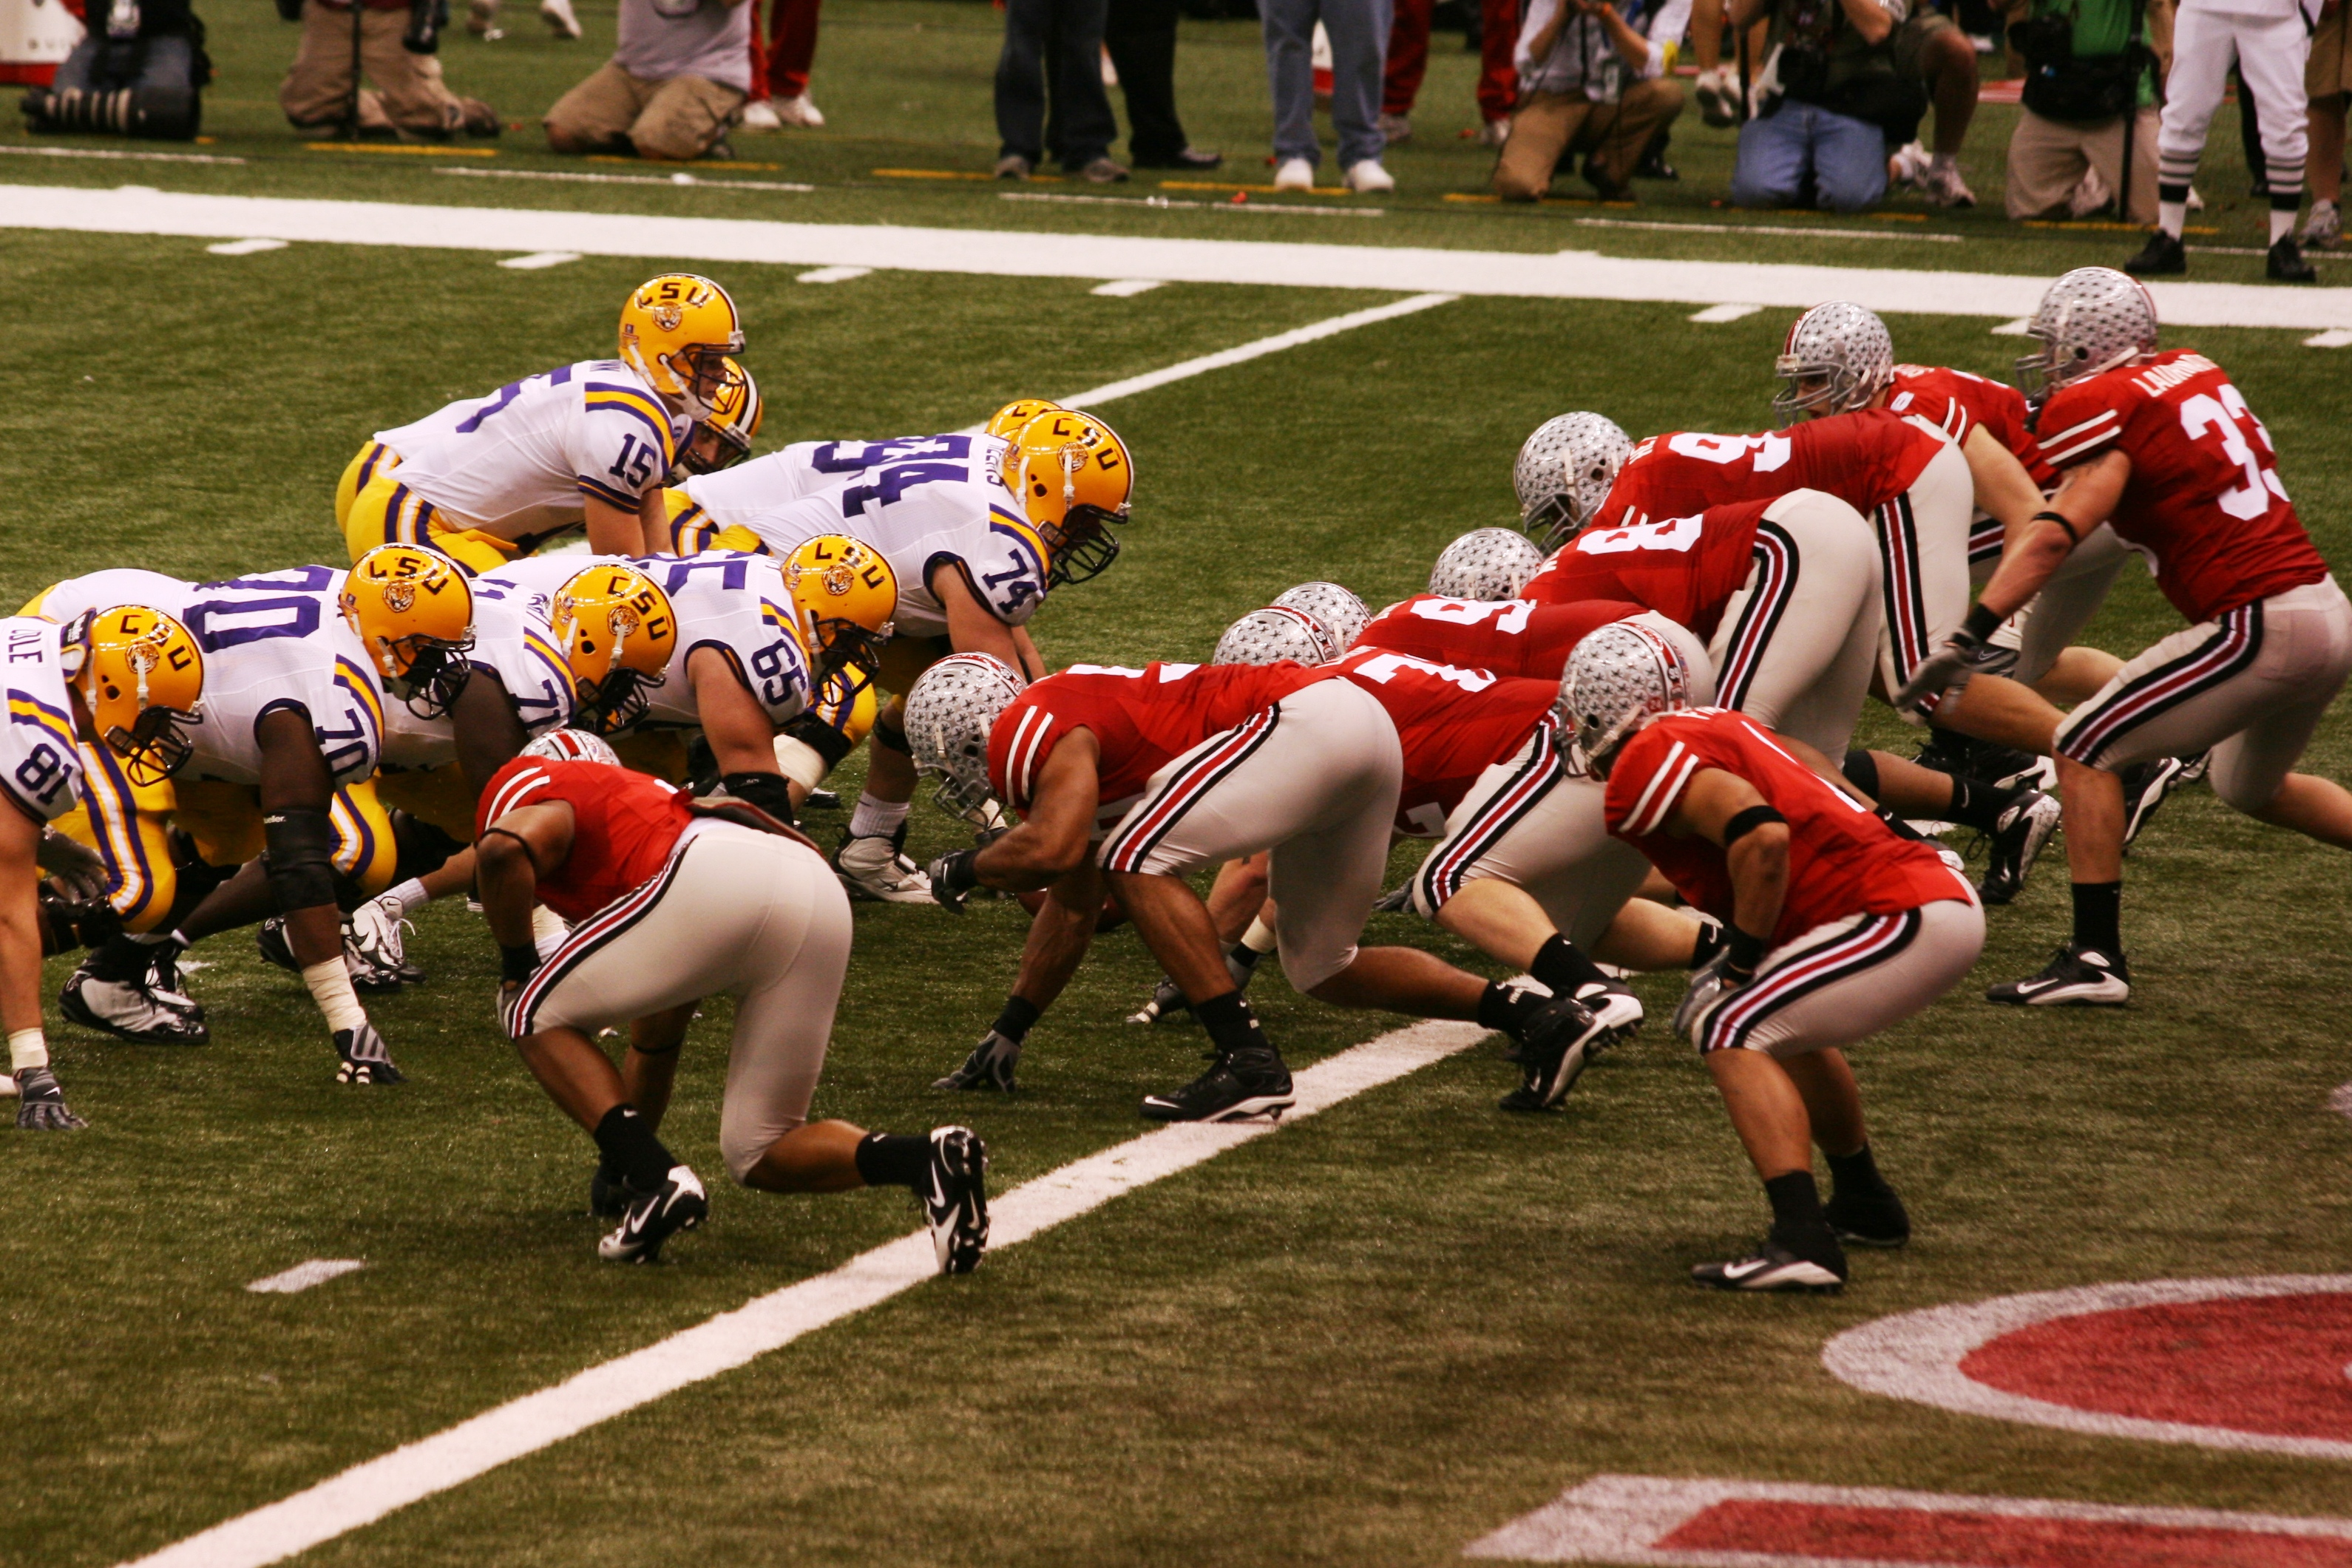 Ohio State lining up against LSU